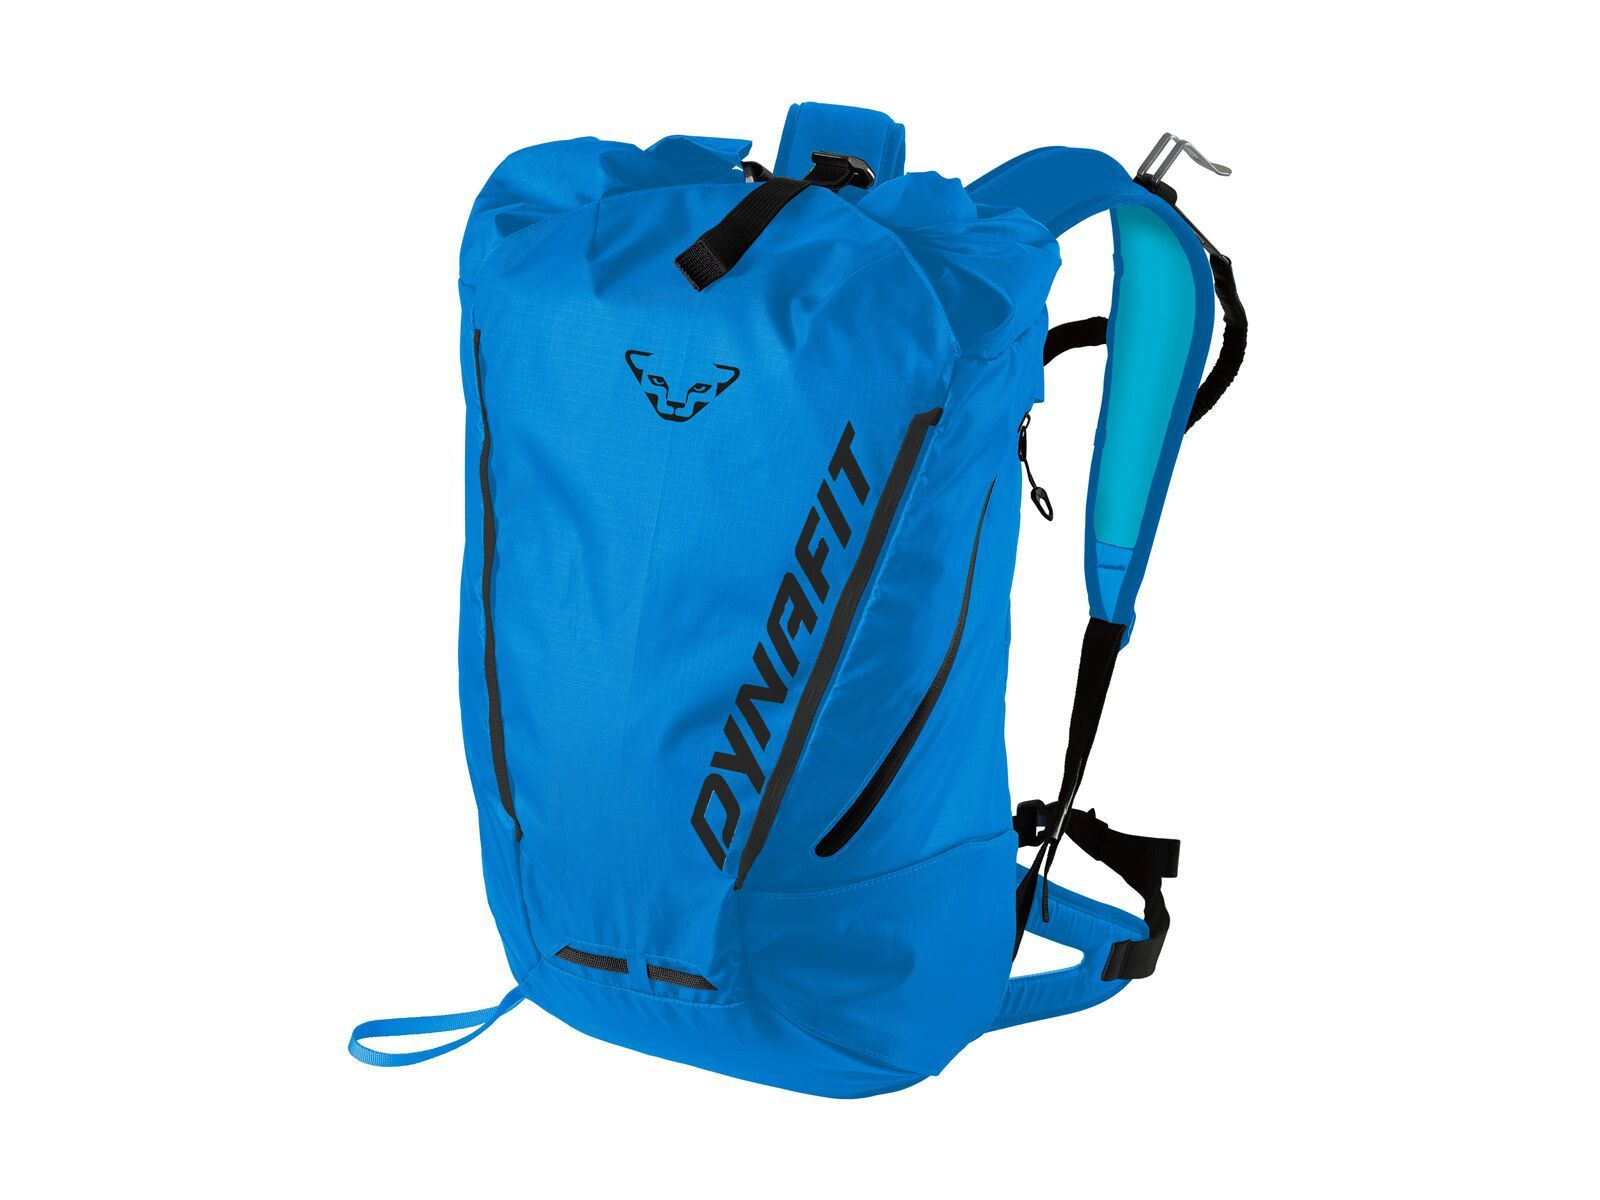 Dynafit Expedition 30, frost - Rucksack 08-0000048953-6480-UNI